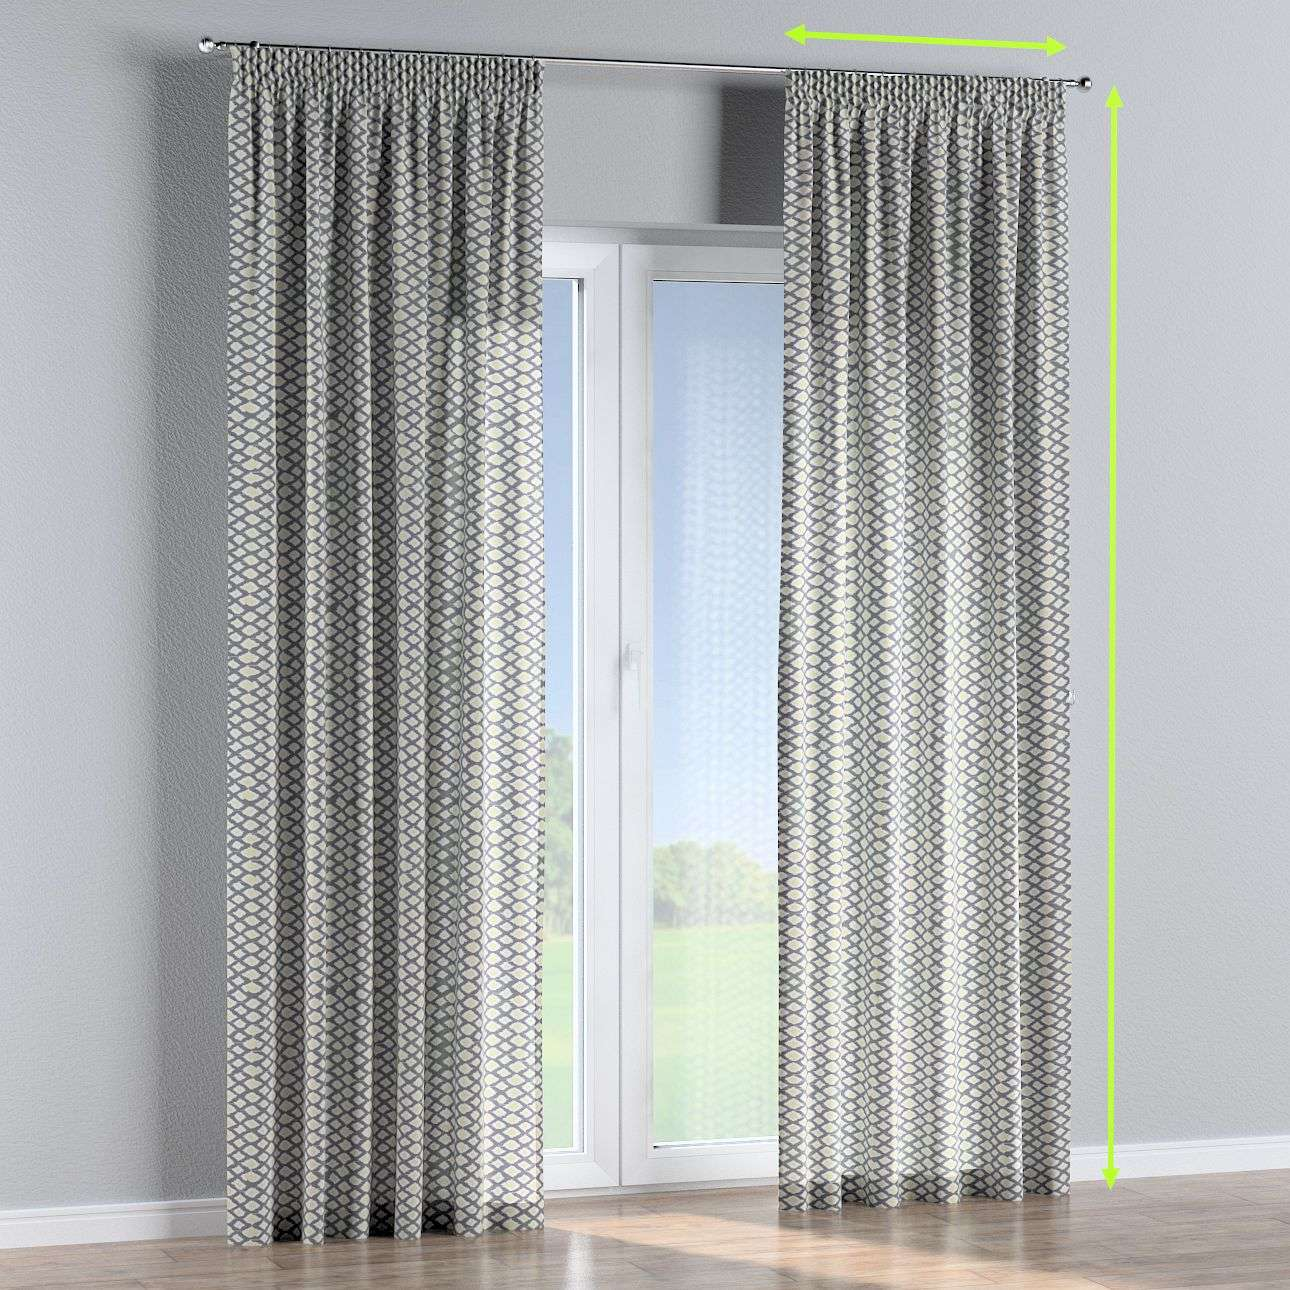 Pencil pleat curtains in collection Comics/Geometrical, fabric: 141-21